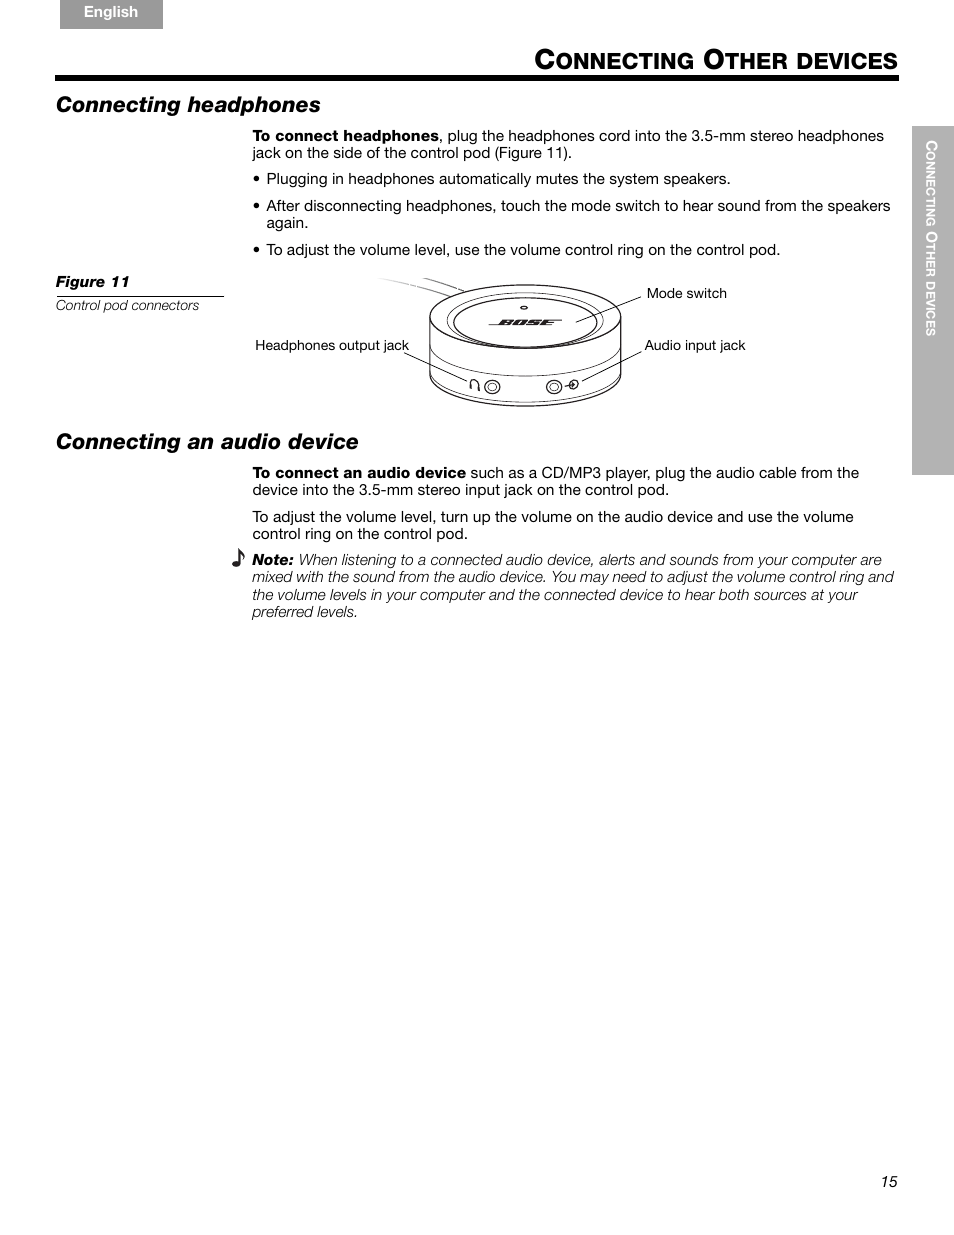 medium resolution of onnecting ther devices connecting headphones bose companion 5 user manual page 17 56